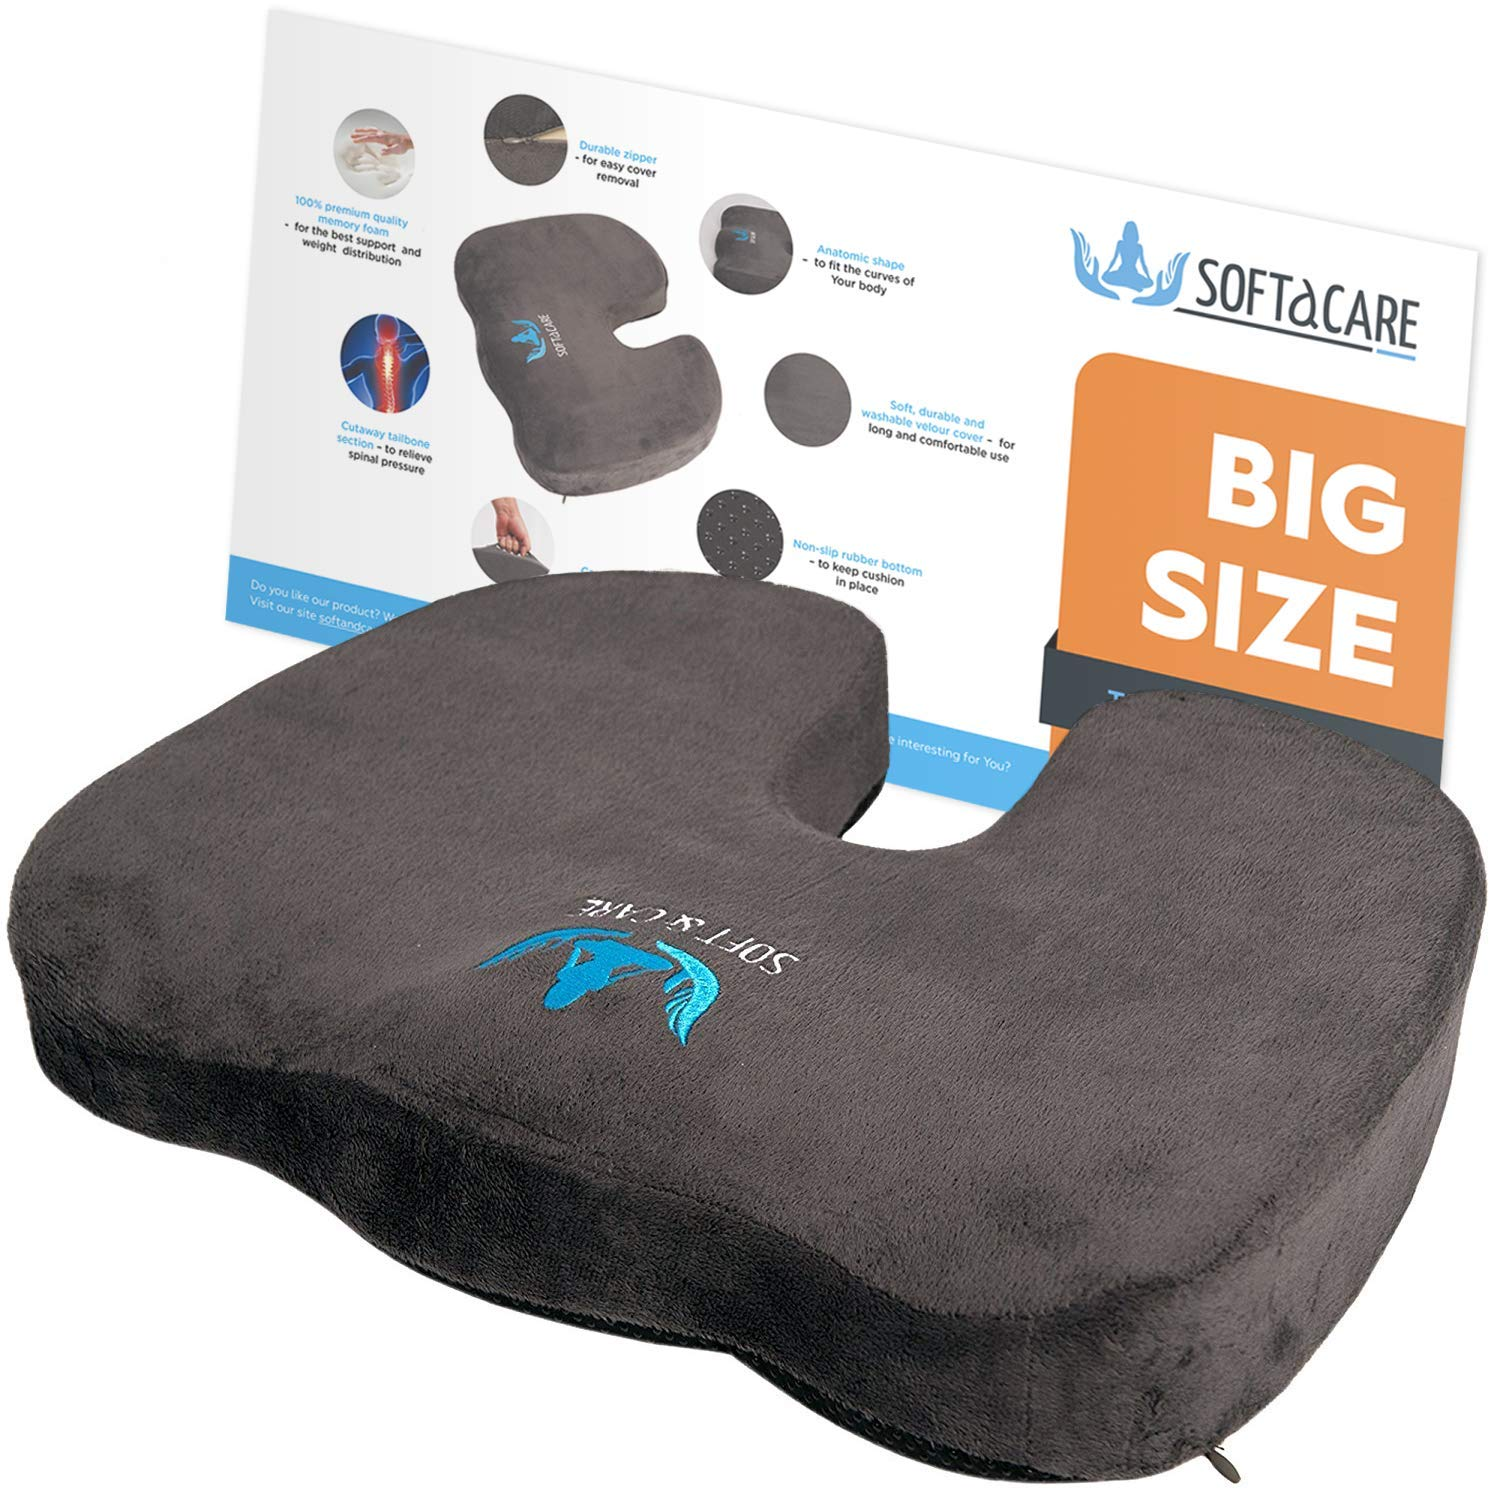 "SOFTaCARE BEST Seat Cushion – BIG Cushion Seat - Office Chair Cushion 18""x16""x 3 1/2'' - Chair Pillow Memory Foam! Ideal Car Seat Cushion - Coccyx Cushion - Relieve Your Pain. Size has the meaning!"